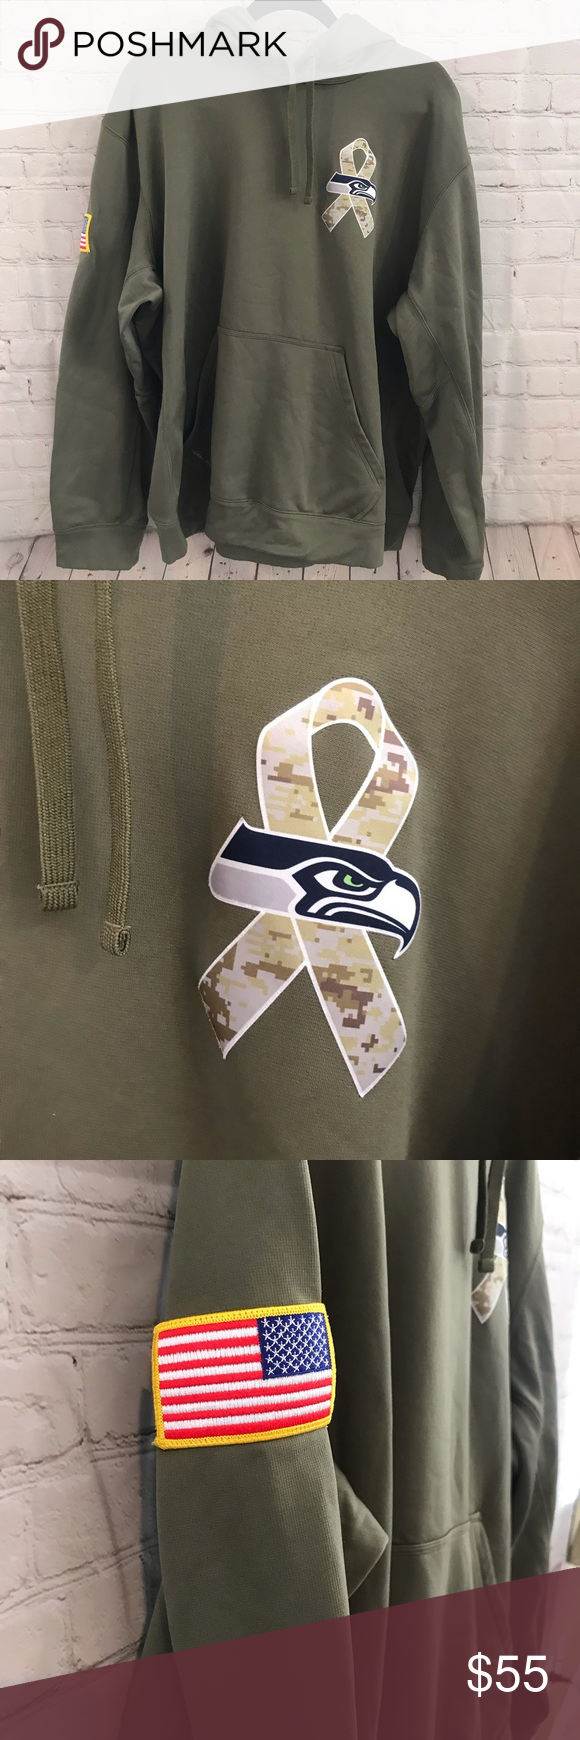 Seattle Seahawks Salute to Service Hoodie, XXL Seattle Seahawks Salute to Service thermal fit Hoodie, XXL. Color is olive and made fore 2014 NFL Salute to Service.  Light pulling on inside fabric. Nike Shirts Sweatshirts & Hoodies #salutetoservice